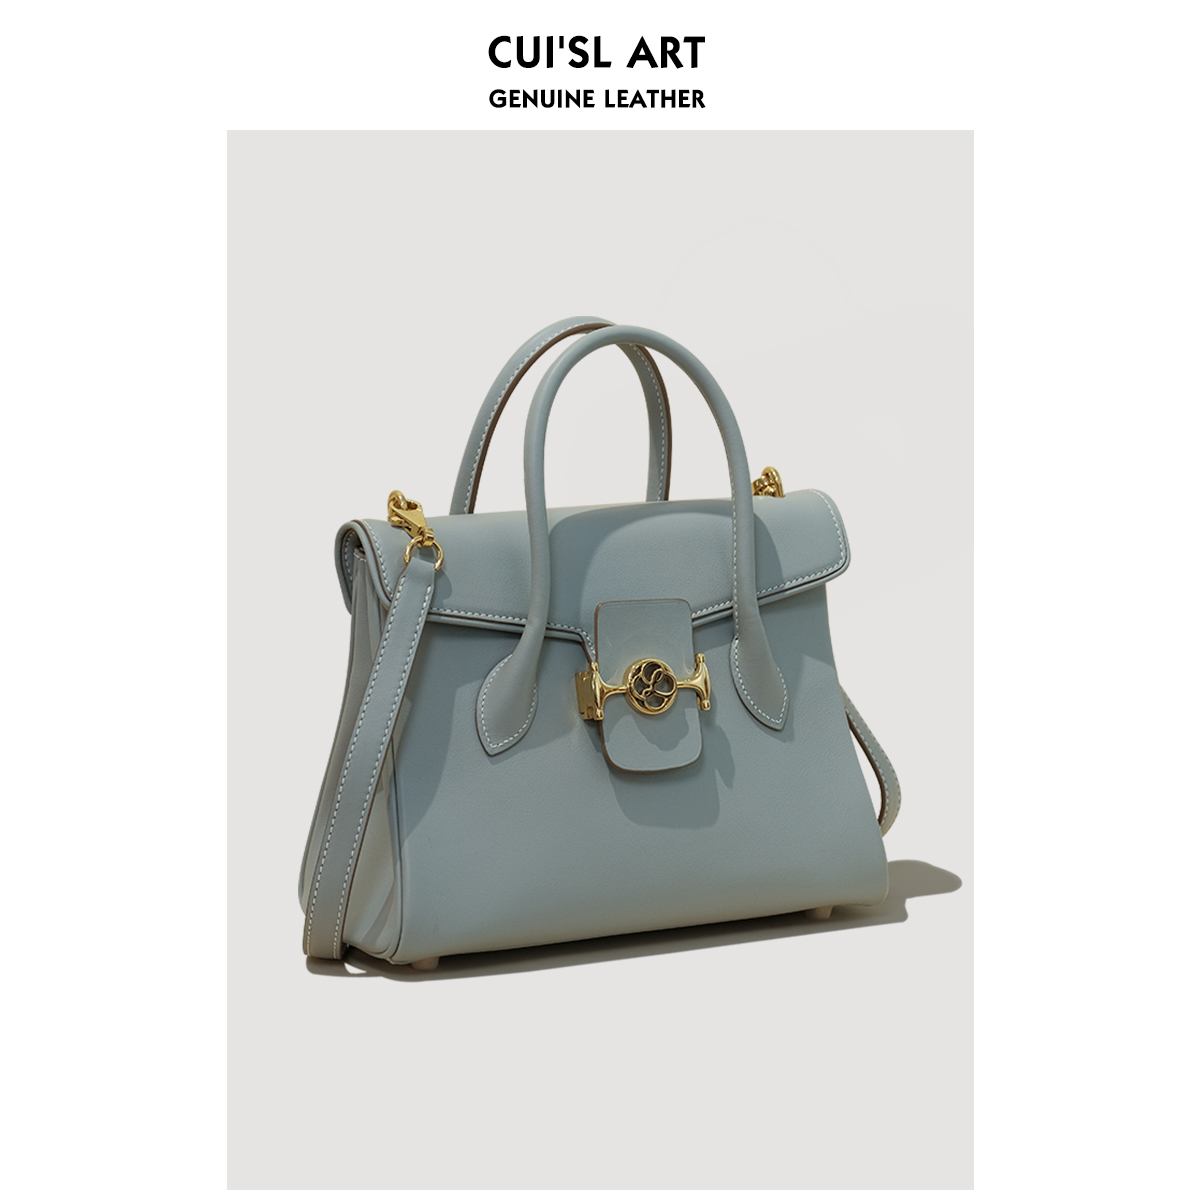 CUISL Cuis leather 25 designer new 2020 autumn winter luxury imported cowhy handbag